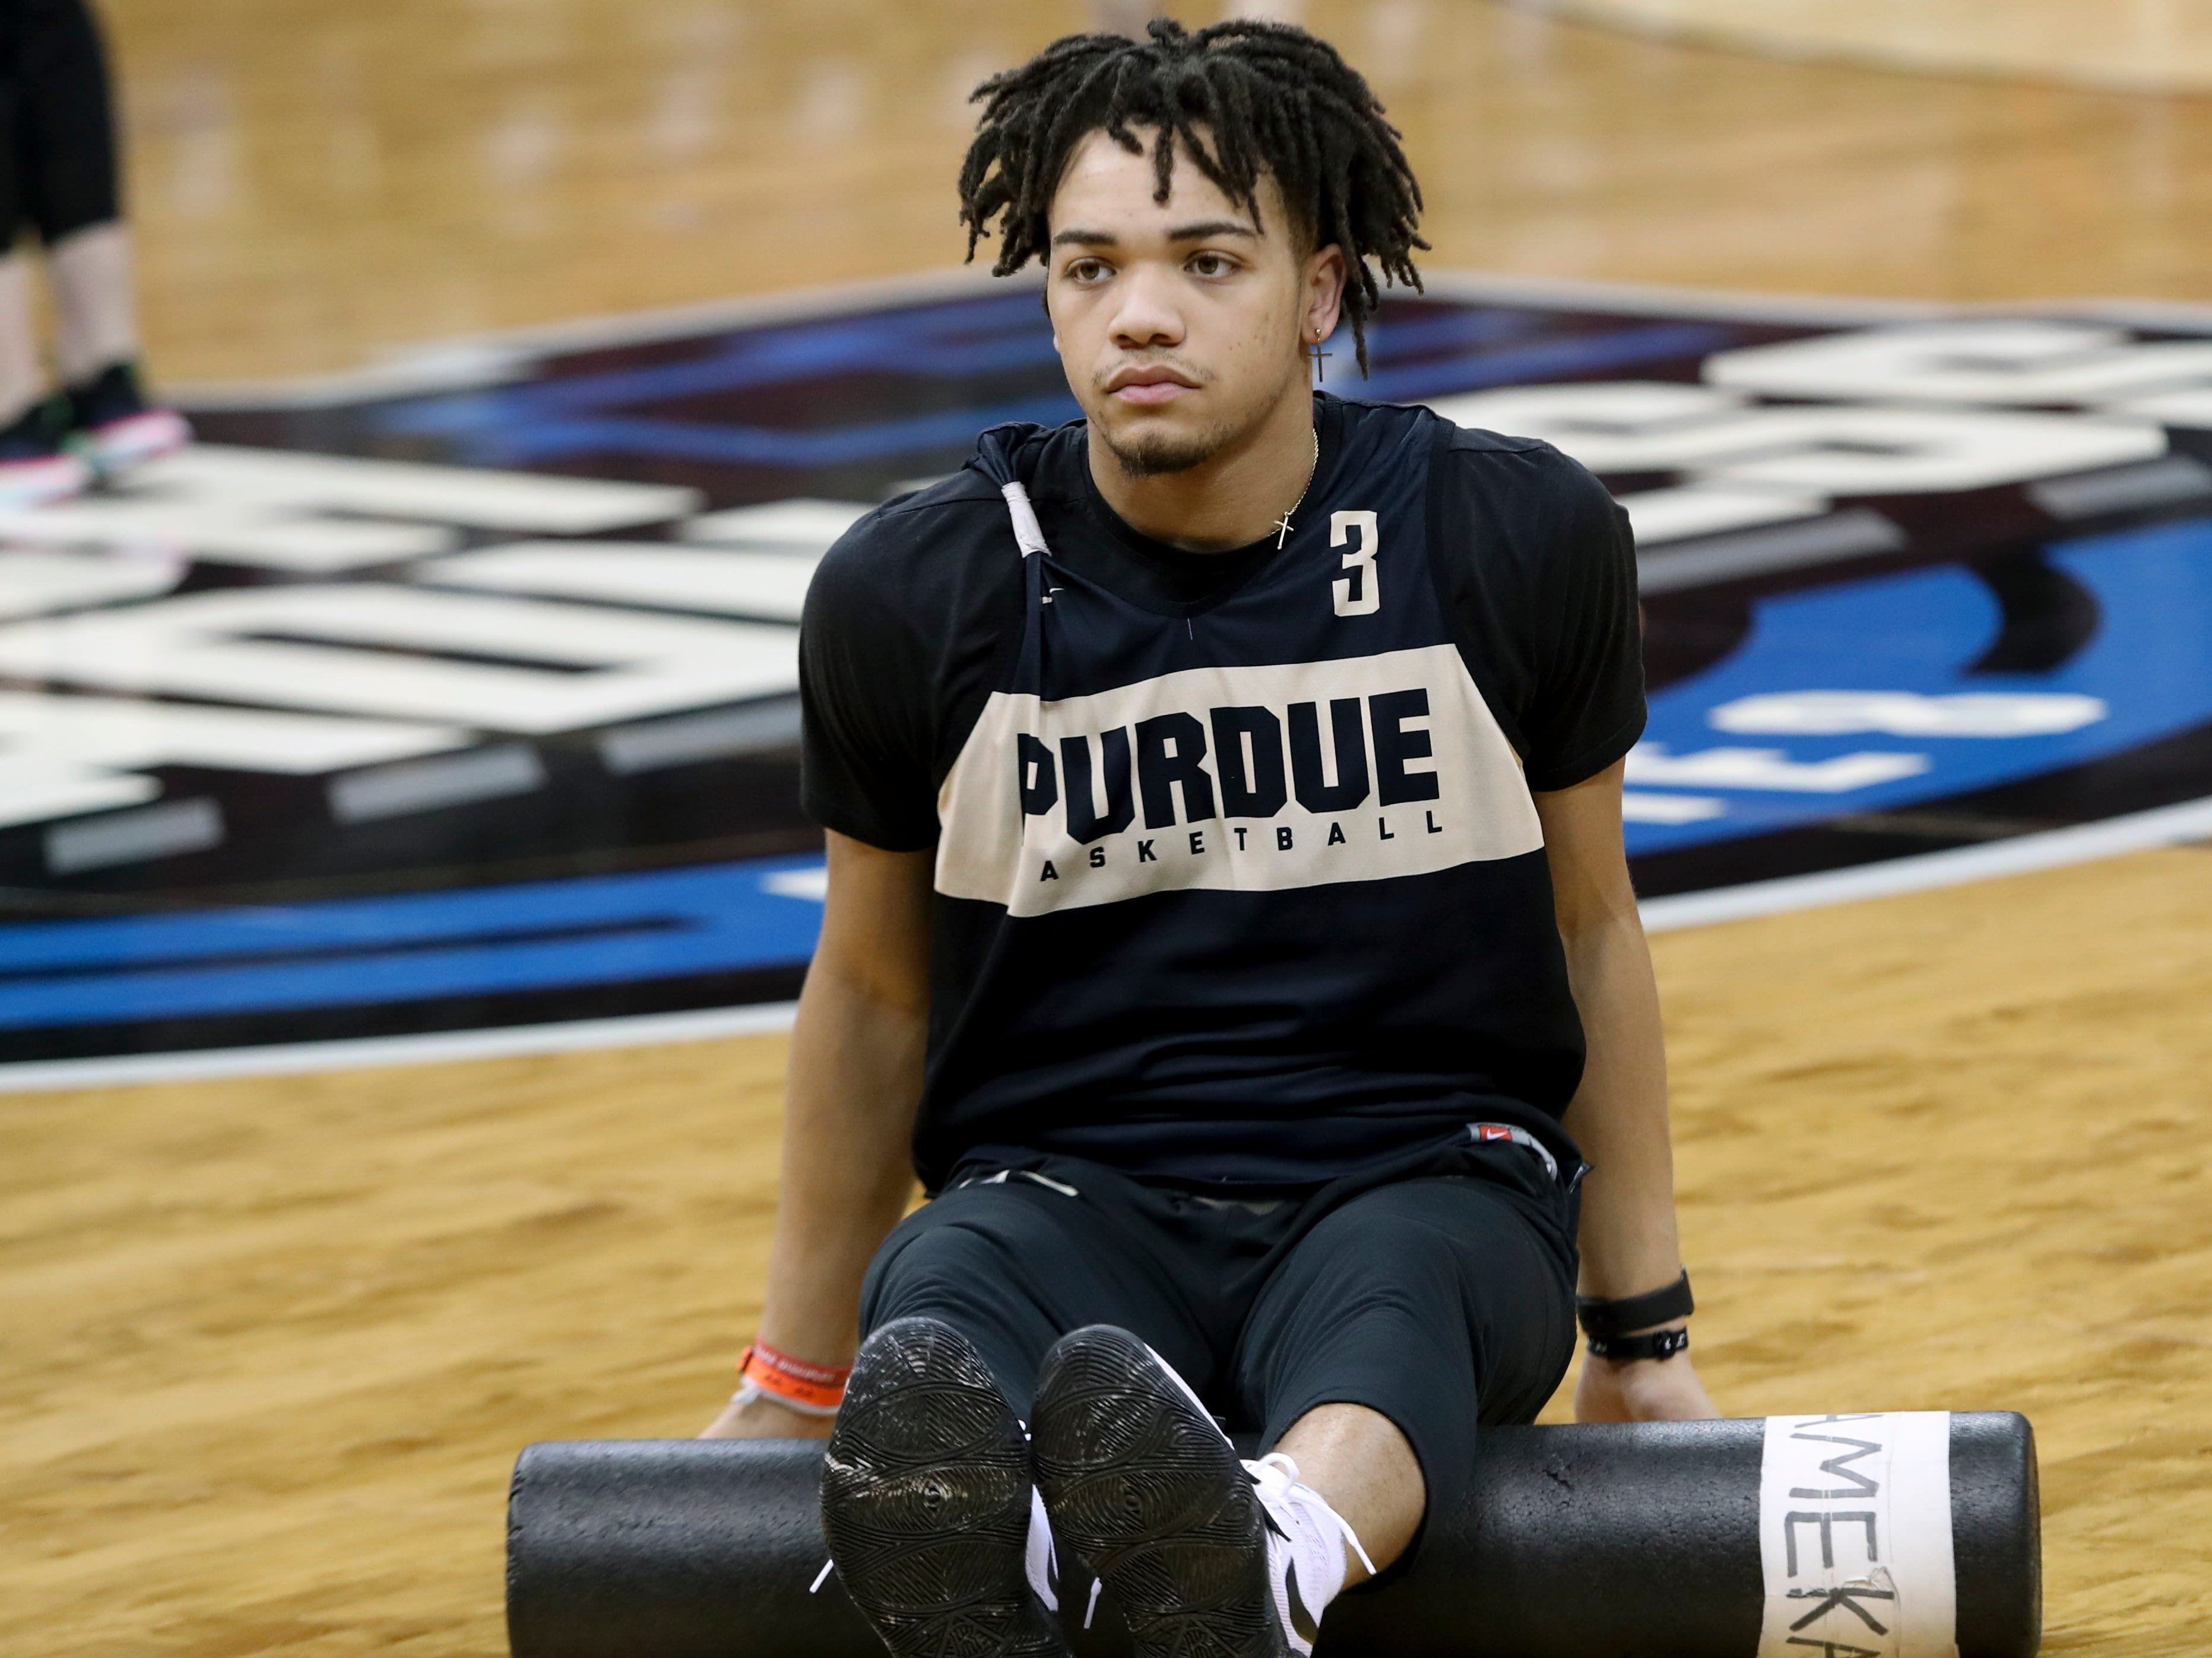 Purdue's Carsen Edwards warms up during practice on March 27 at the KFC Yum Center in Louisville, Ky.